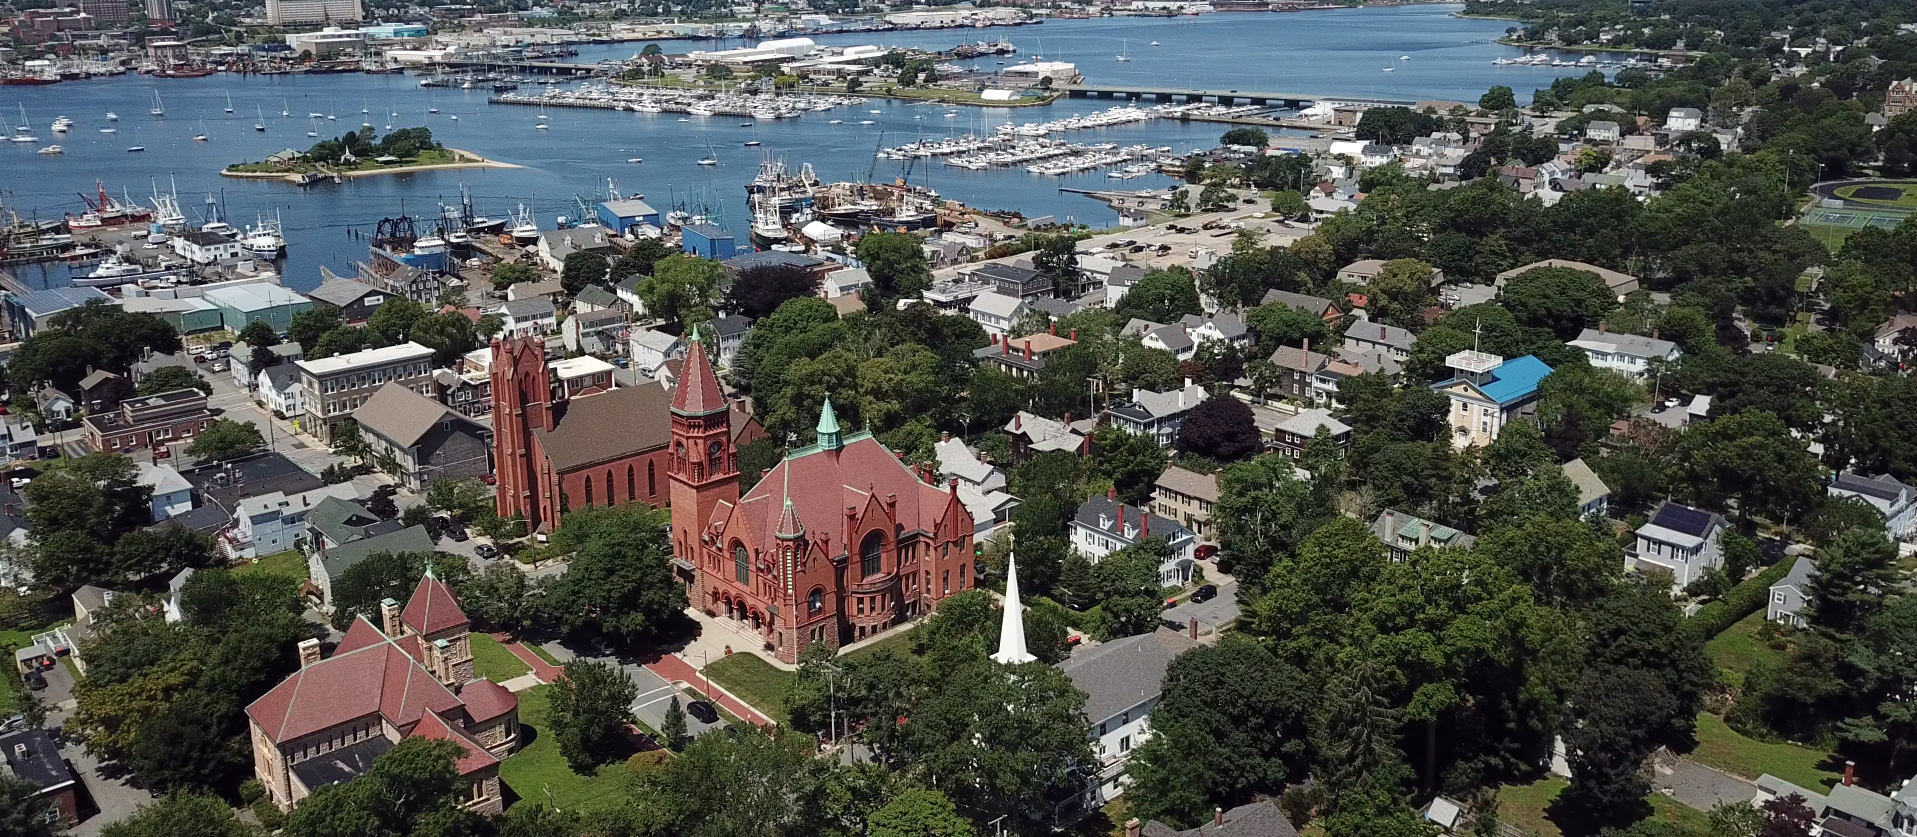 Northeast Maritime Institute | Located in beautiful Fairhaven, Massachusetts